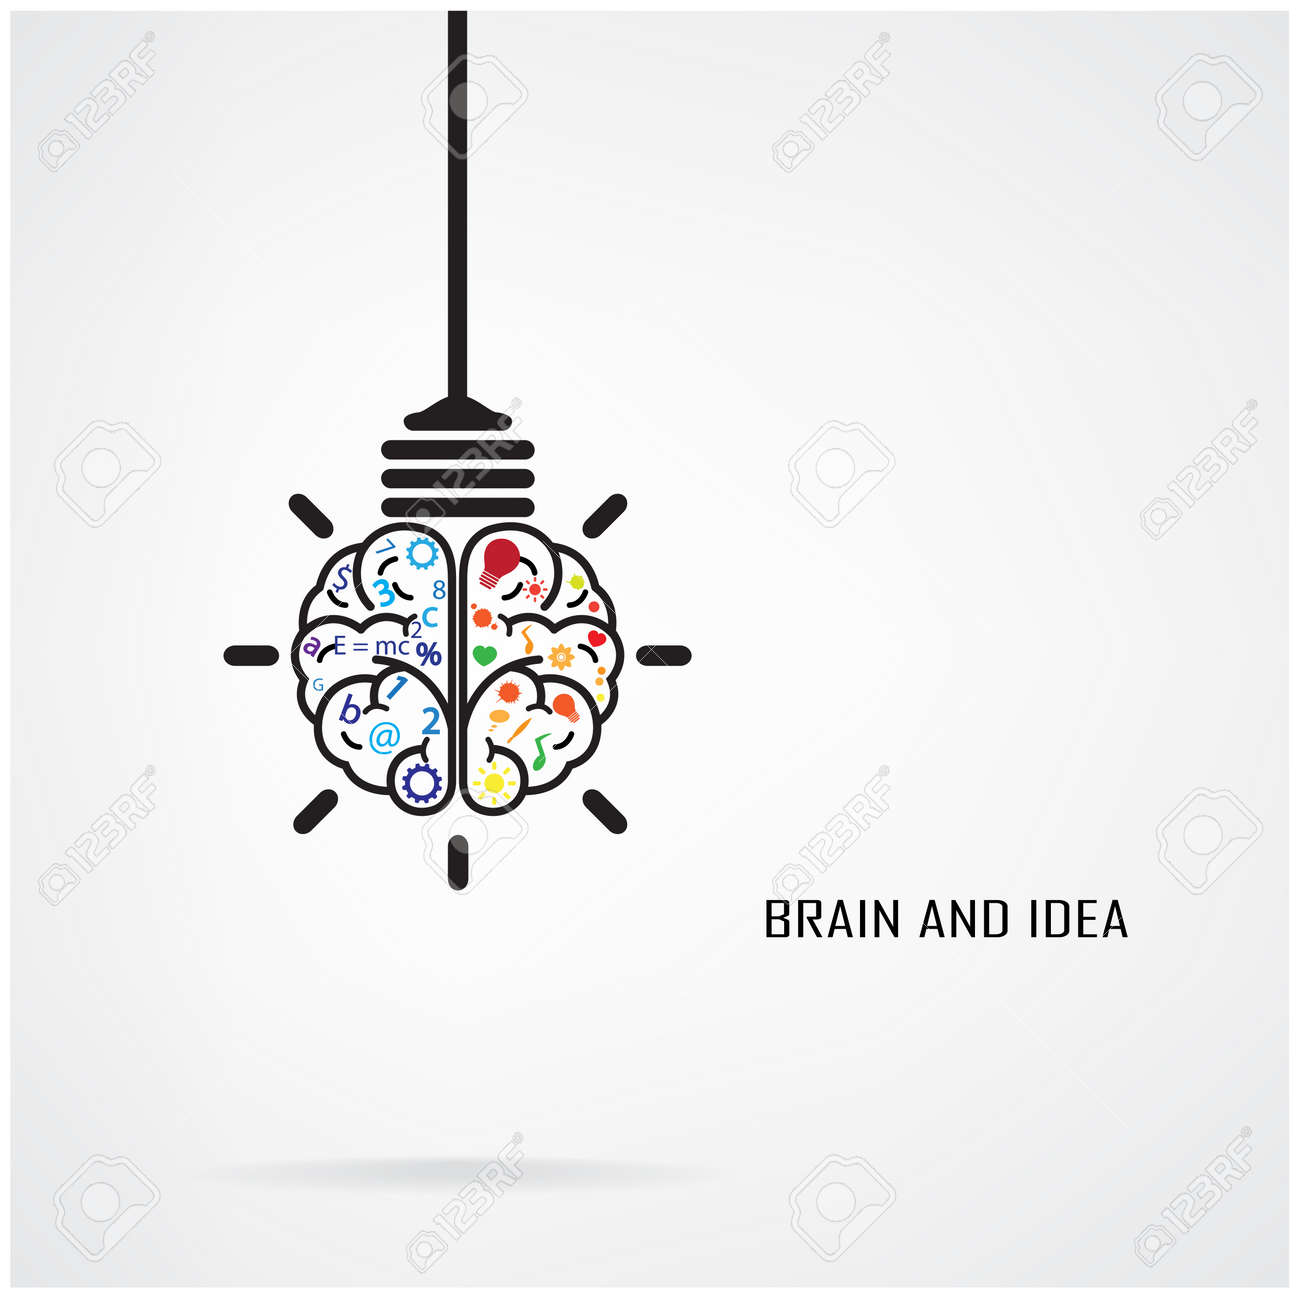 creative brain idea and light bulb concept design for poster rh 123rf com open concept design ideas architectural design concept ideas pdf